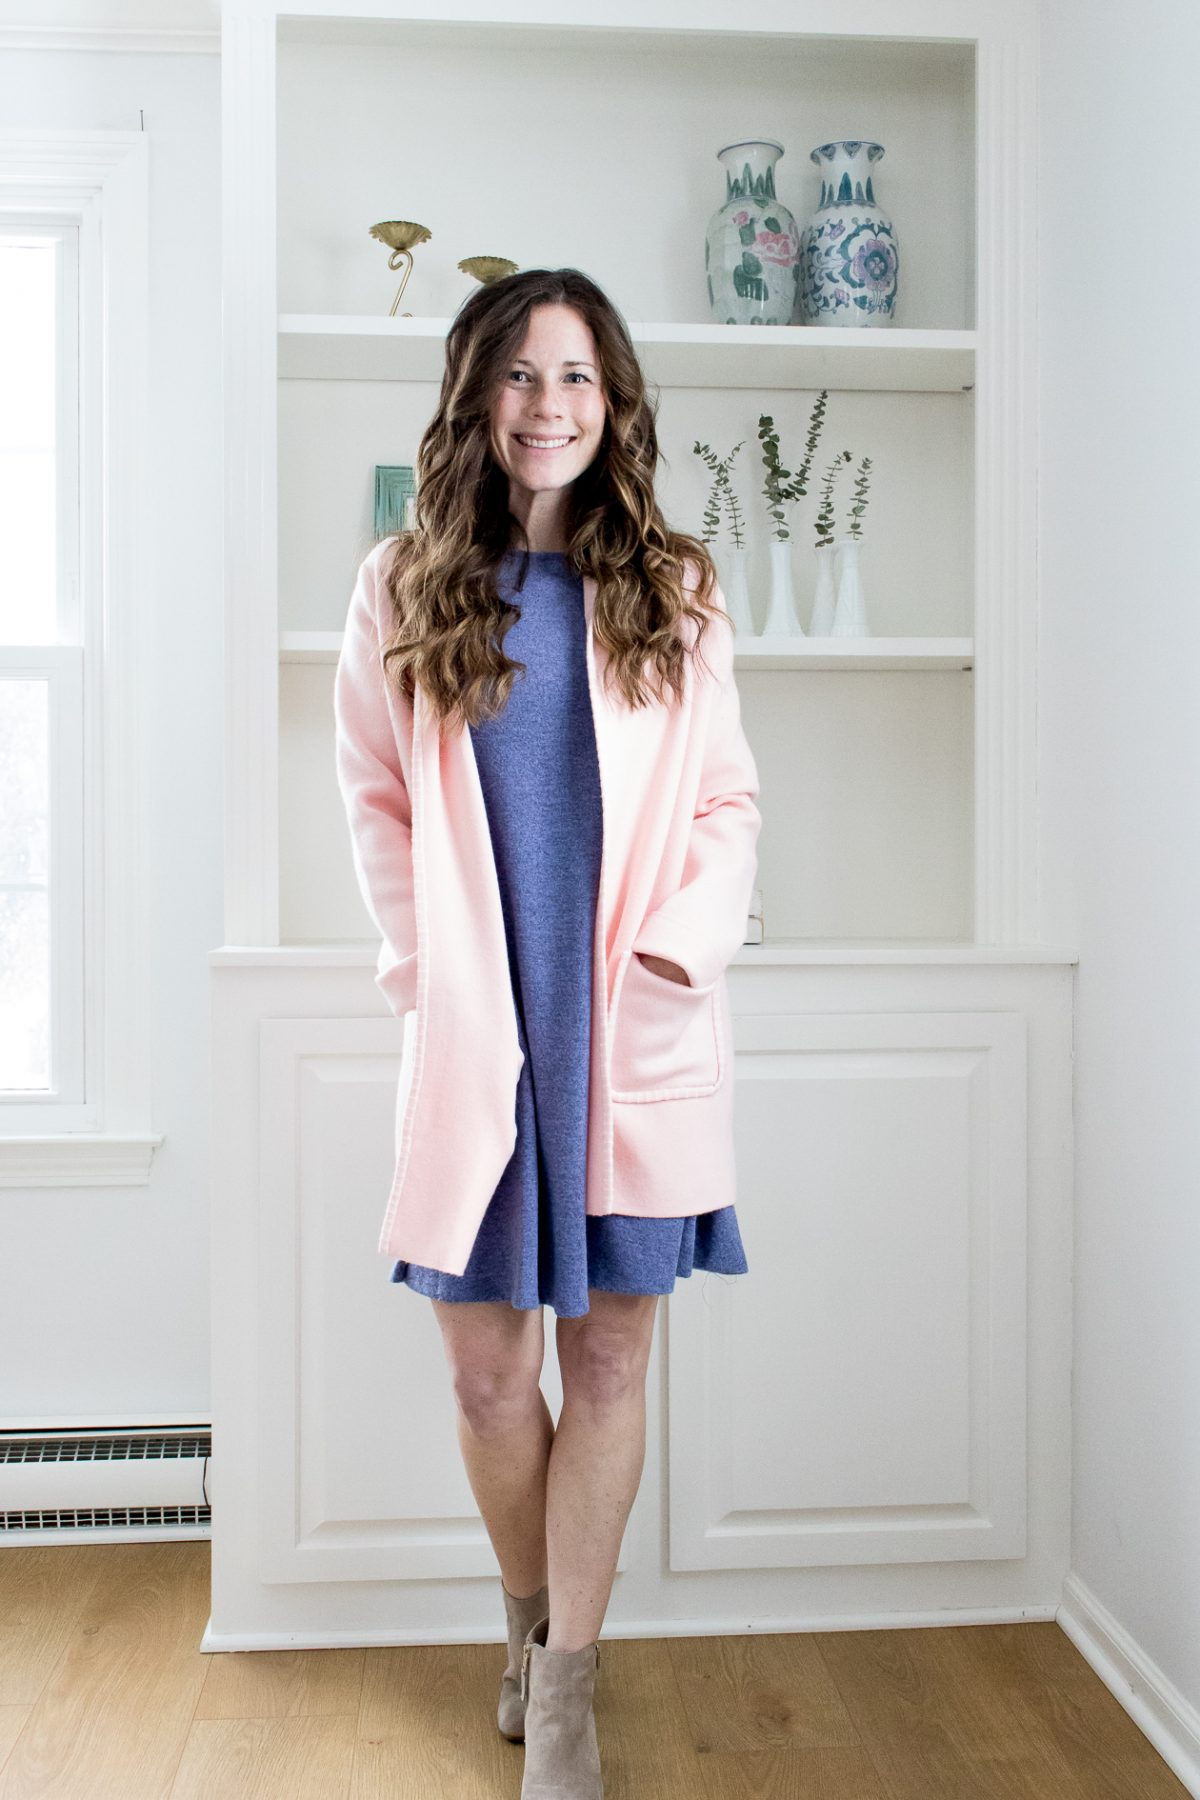 Smiling woman in pink sweater over blue dress